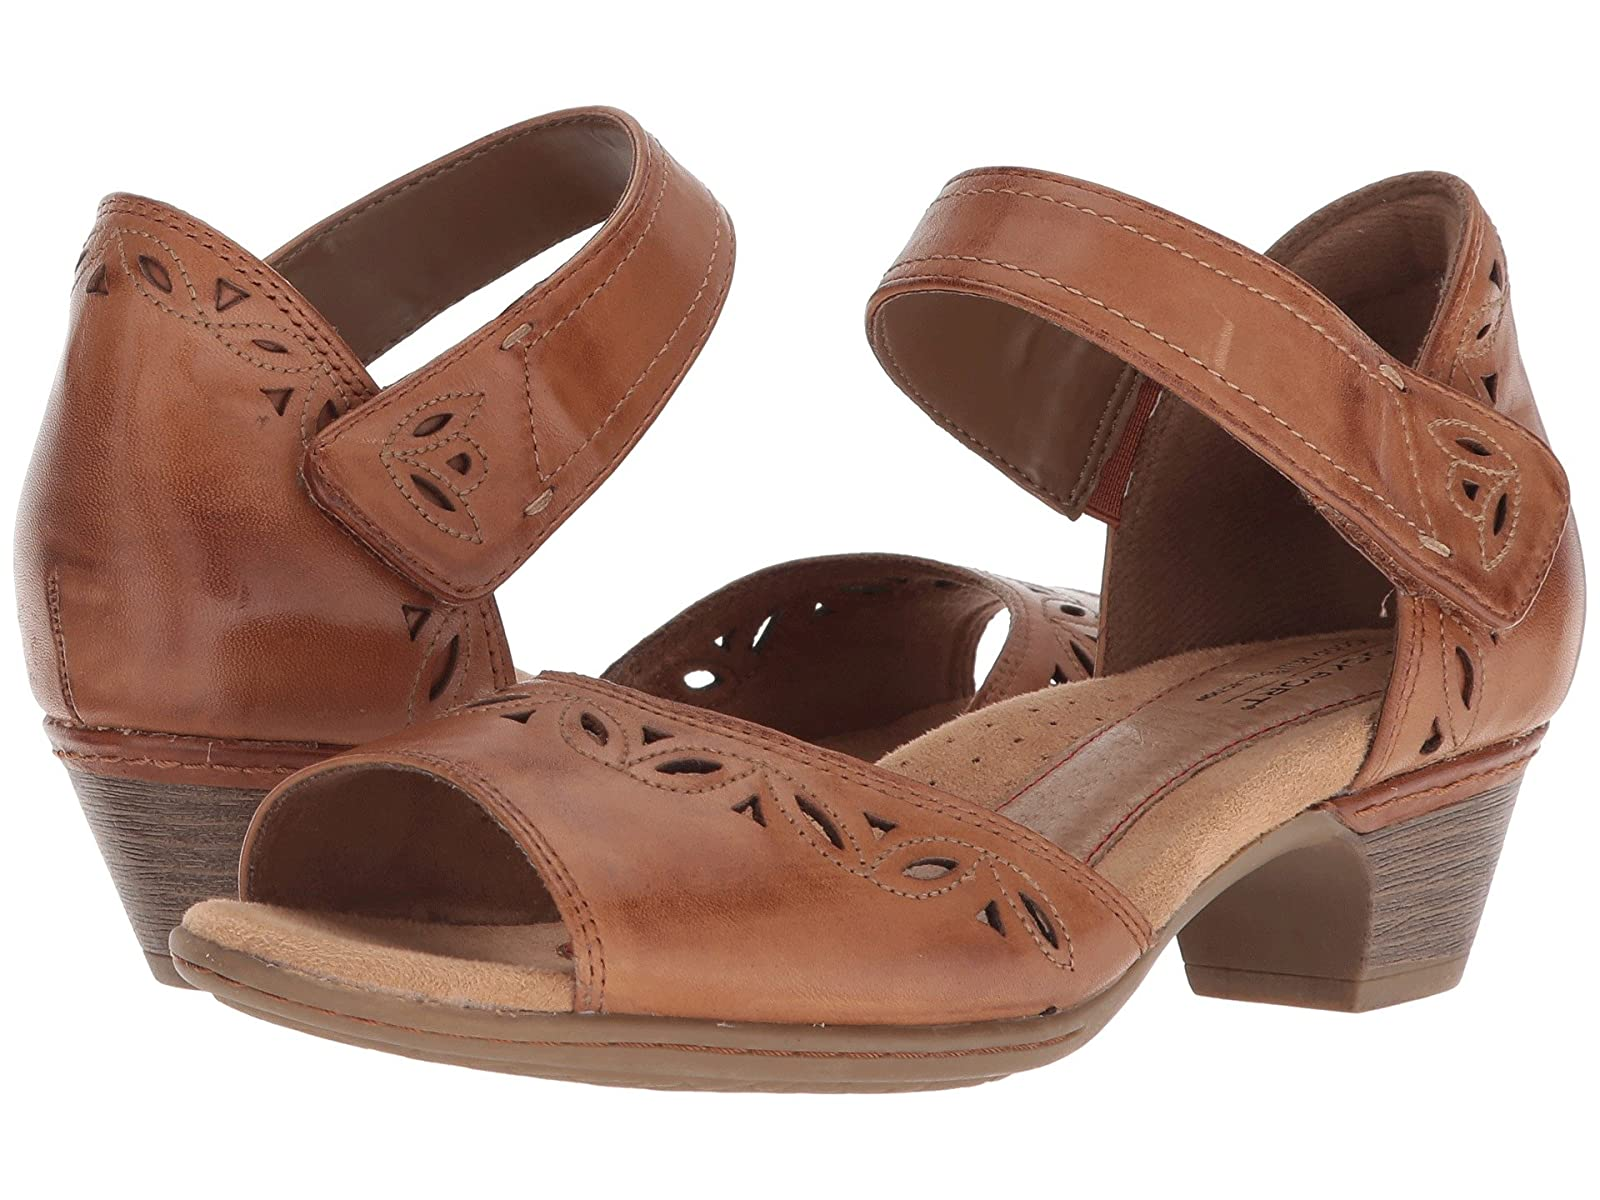 Rockport Cobb Hill Collection Cobb Hill Abbott Two-Piece Ankle StrapAtmospheric grades have affordable shoes